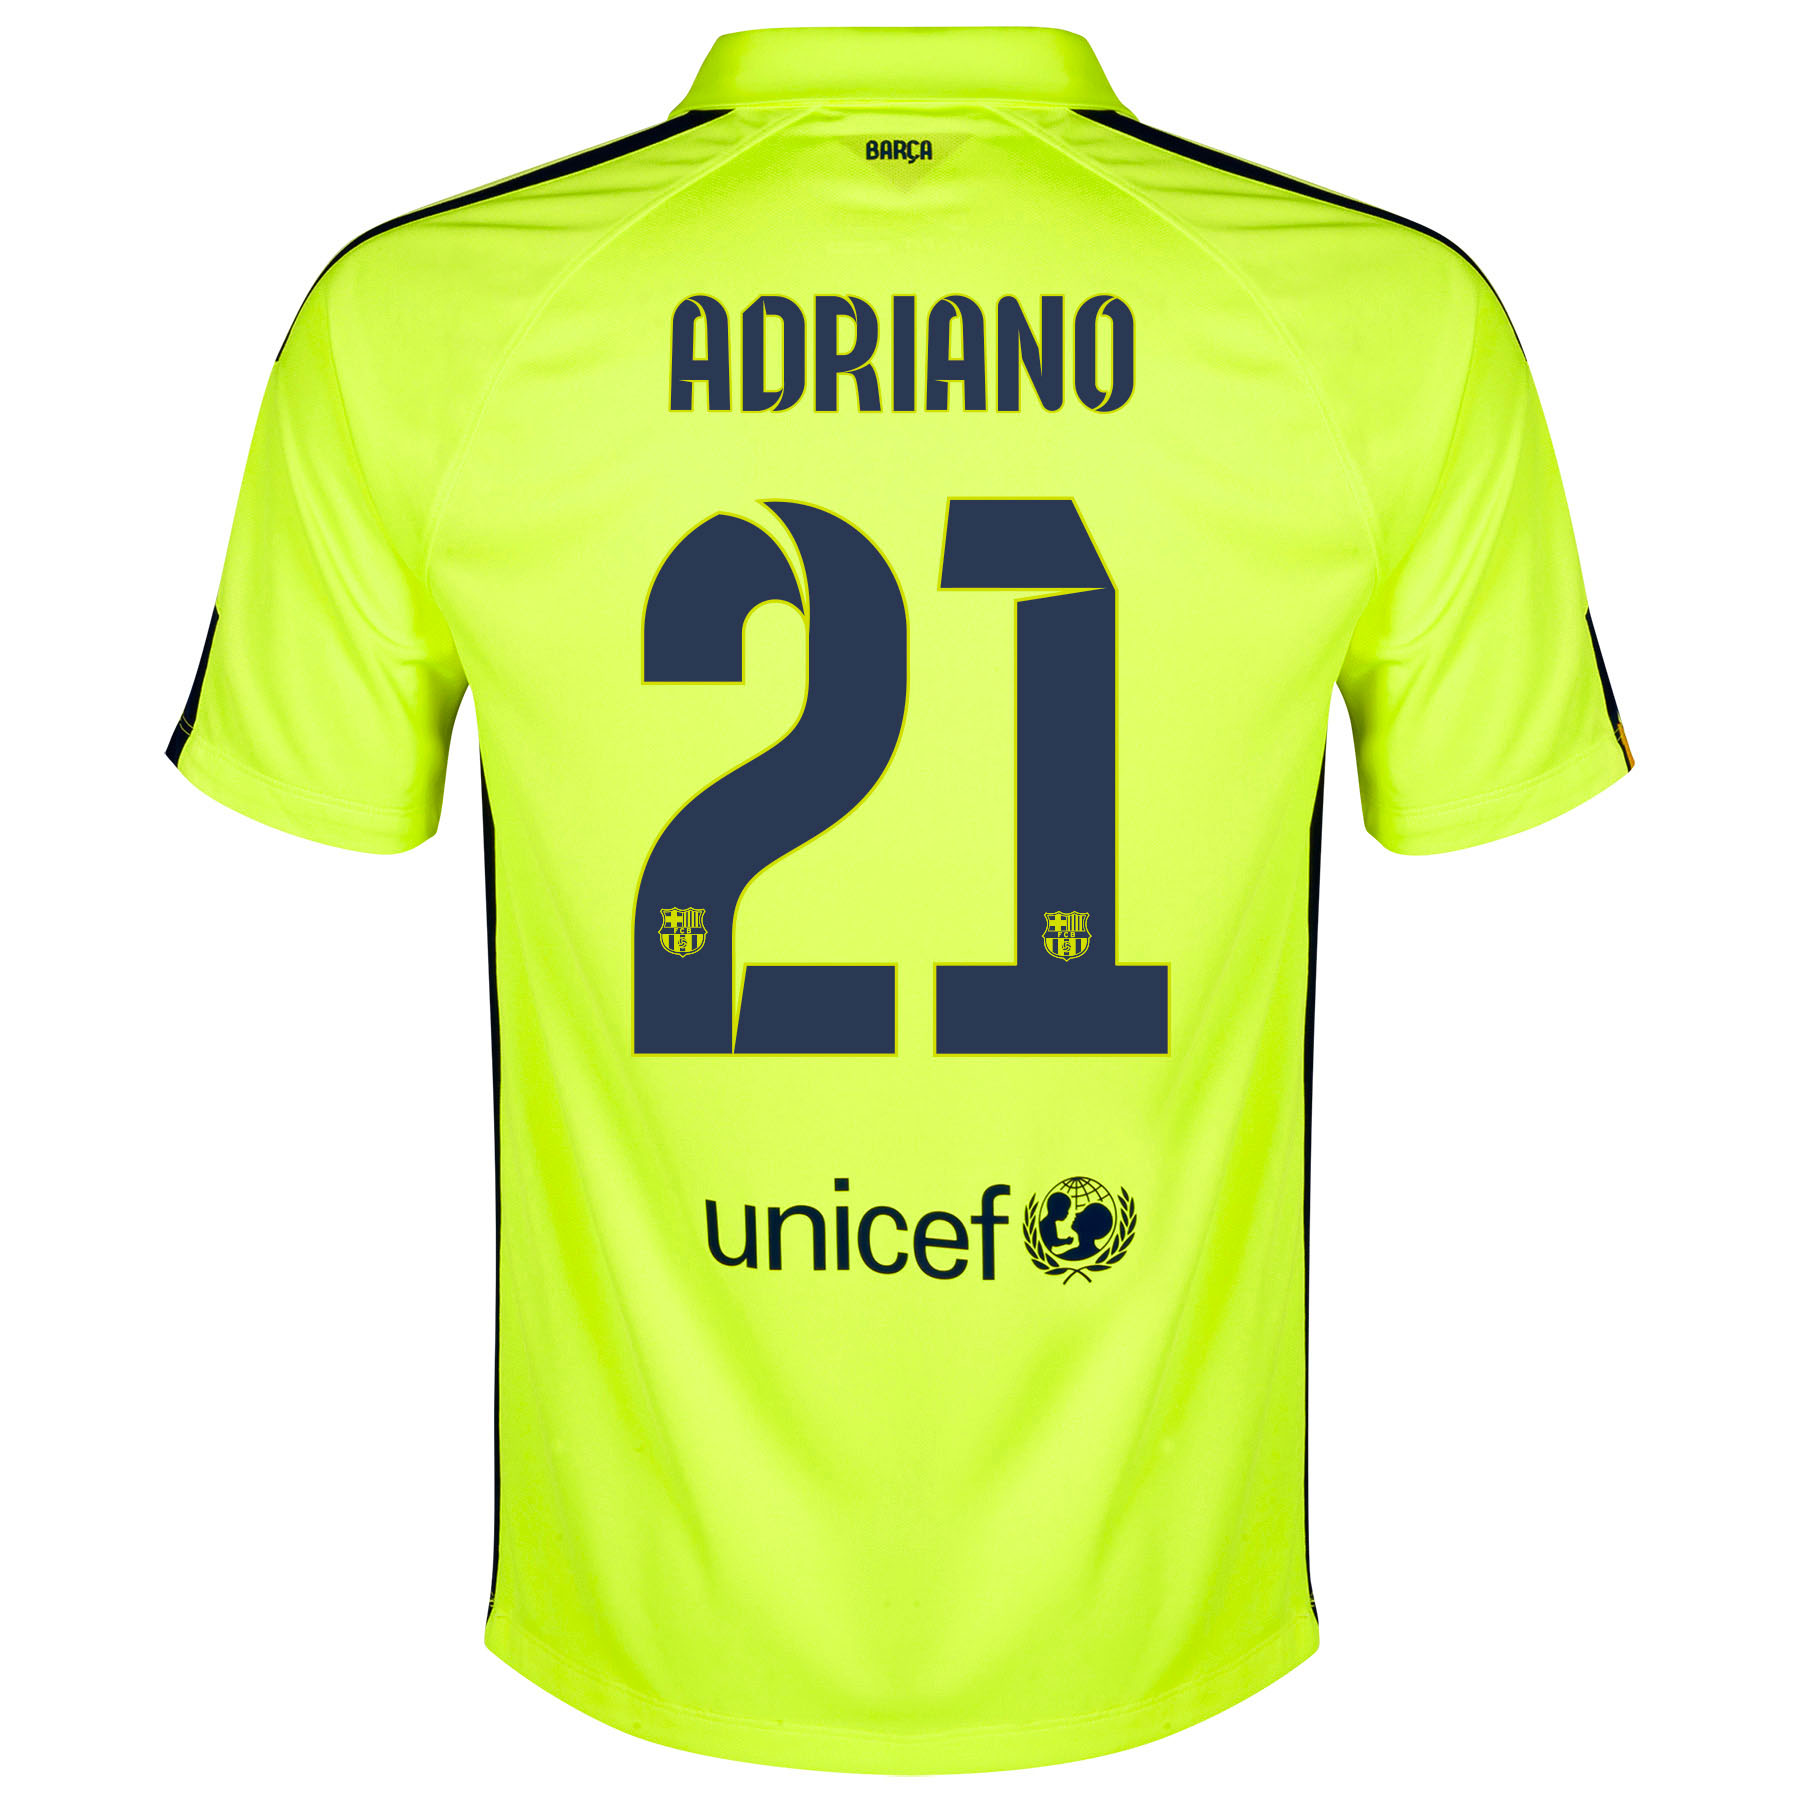 Barcelona Third Shirt 2014/15 Yellow with Adriano 21 printing